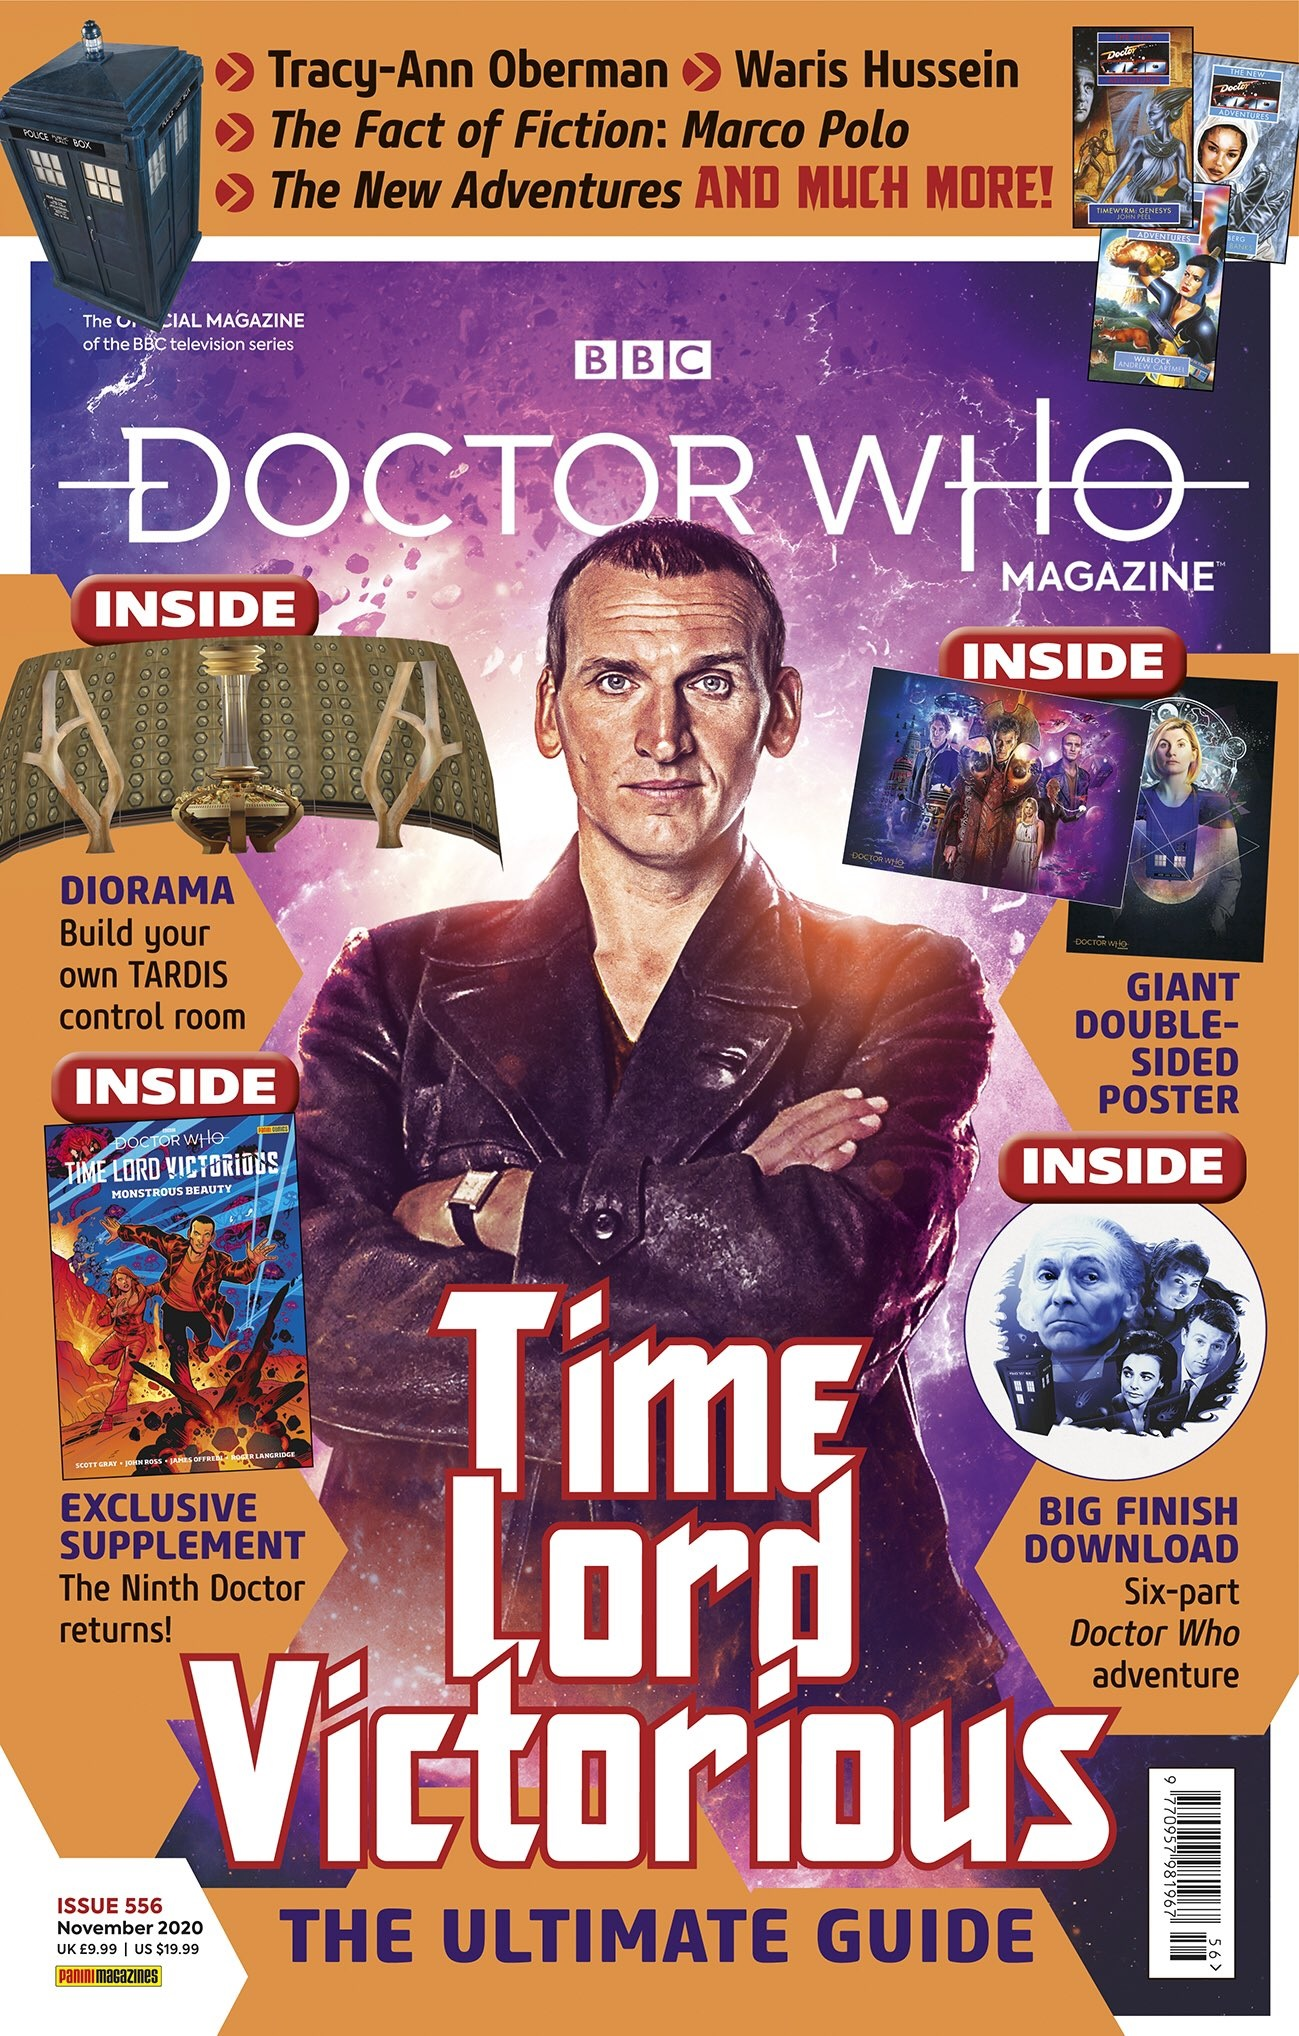 Out Now: The Ninth Doctor Returns for Time Lord Victorious in Doctor Who Magazine #556